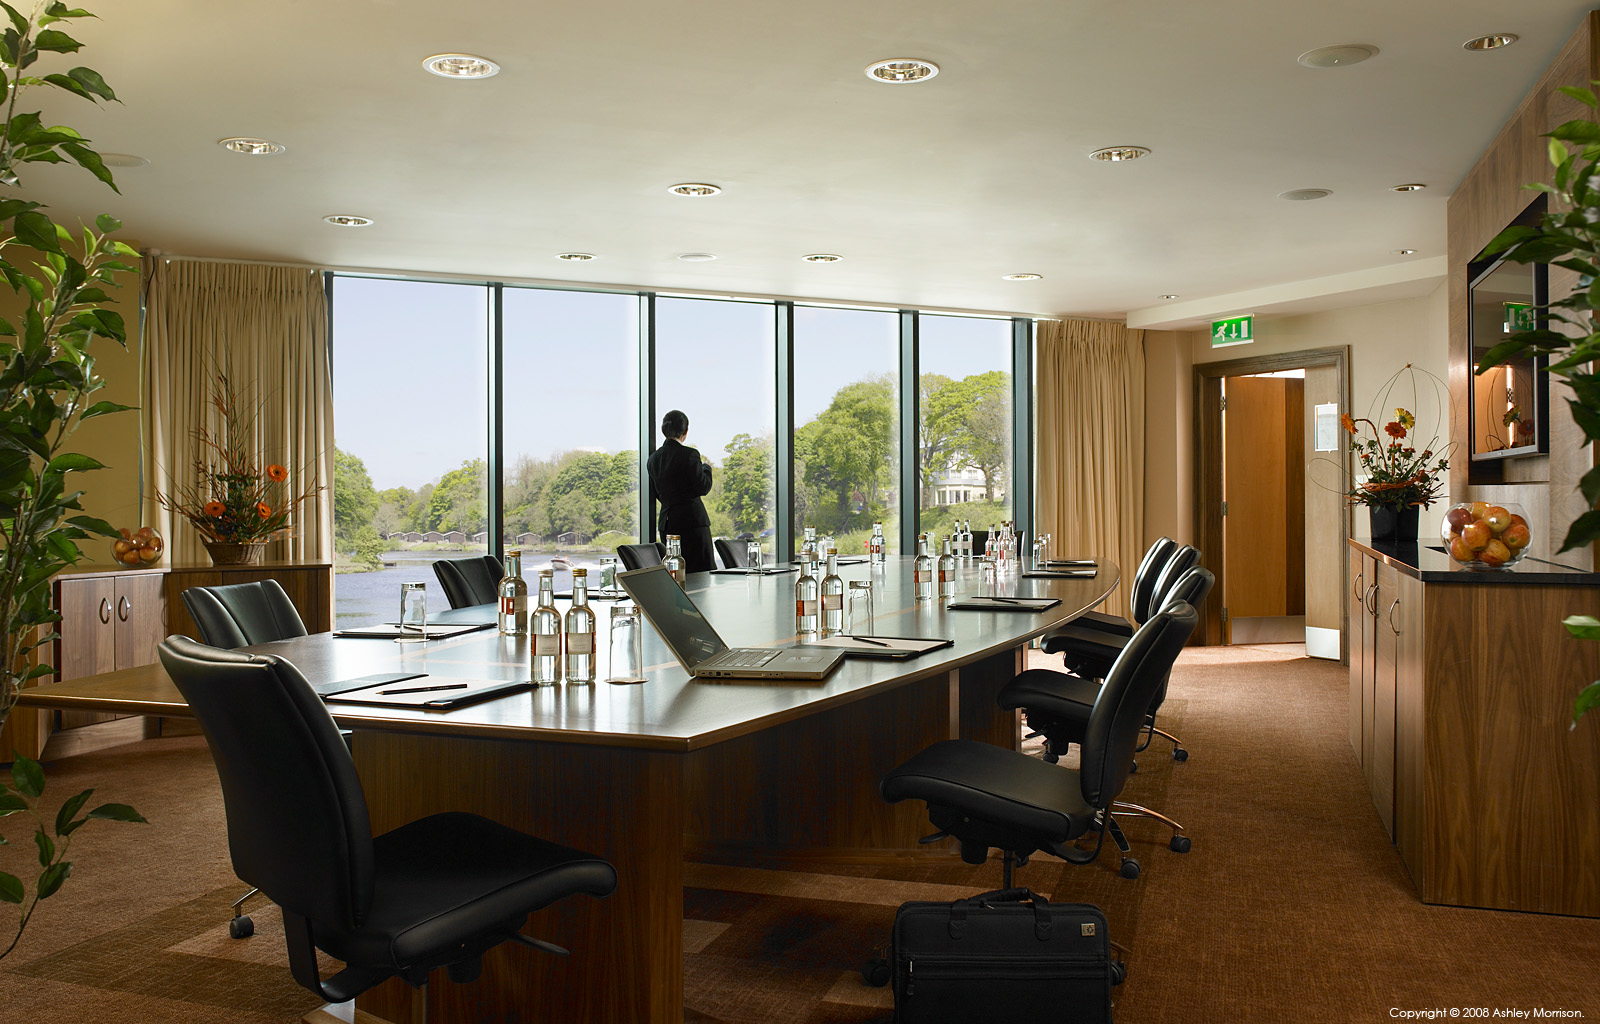 The boardroom at the Carlton Shearwater Hotel in Ireland by Ashley Morrison.